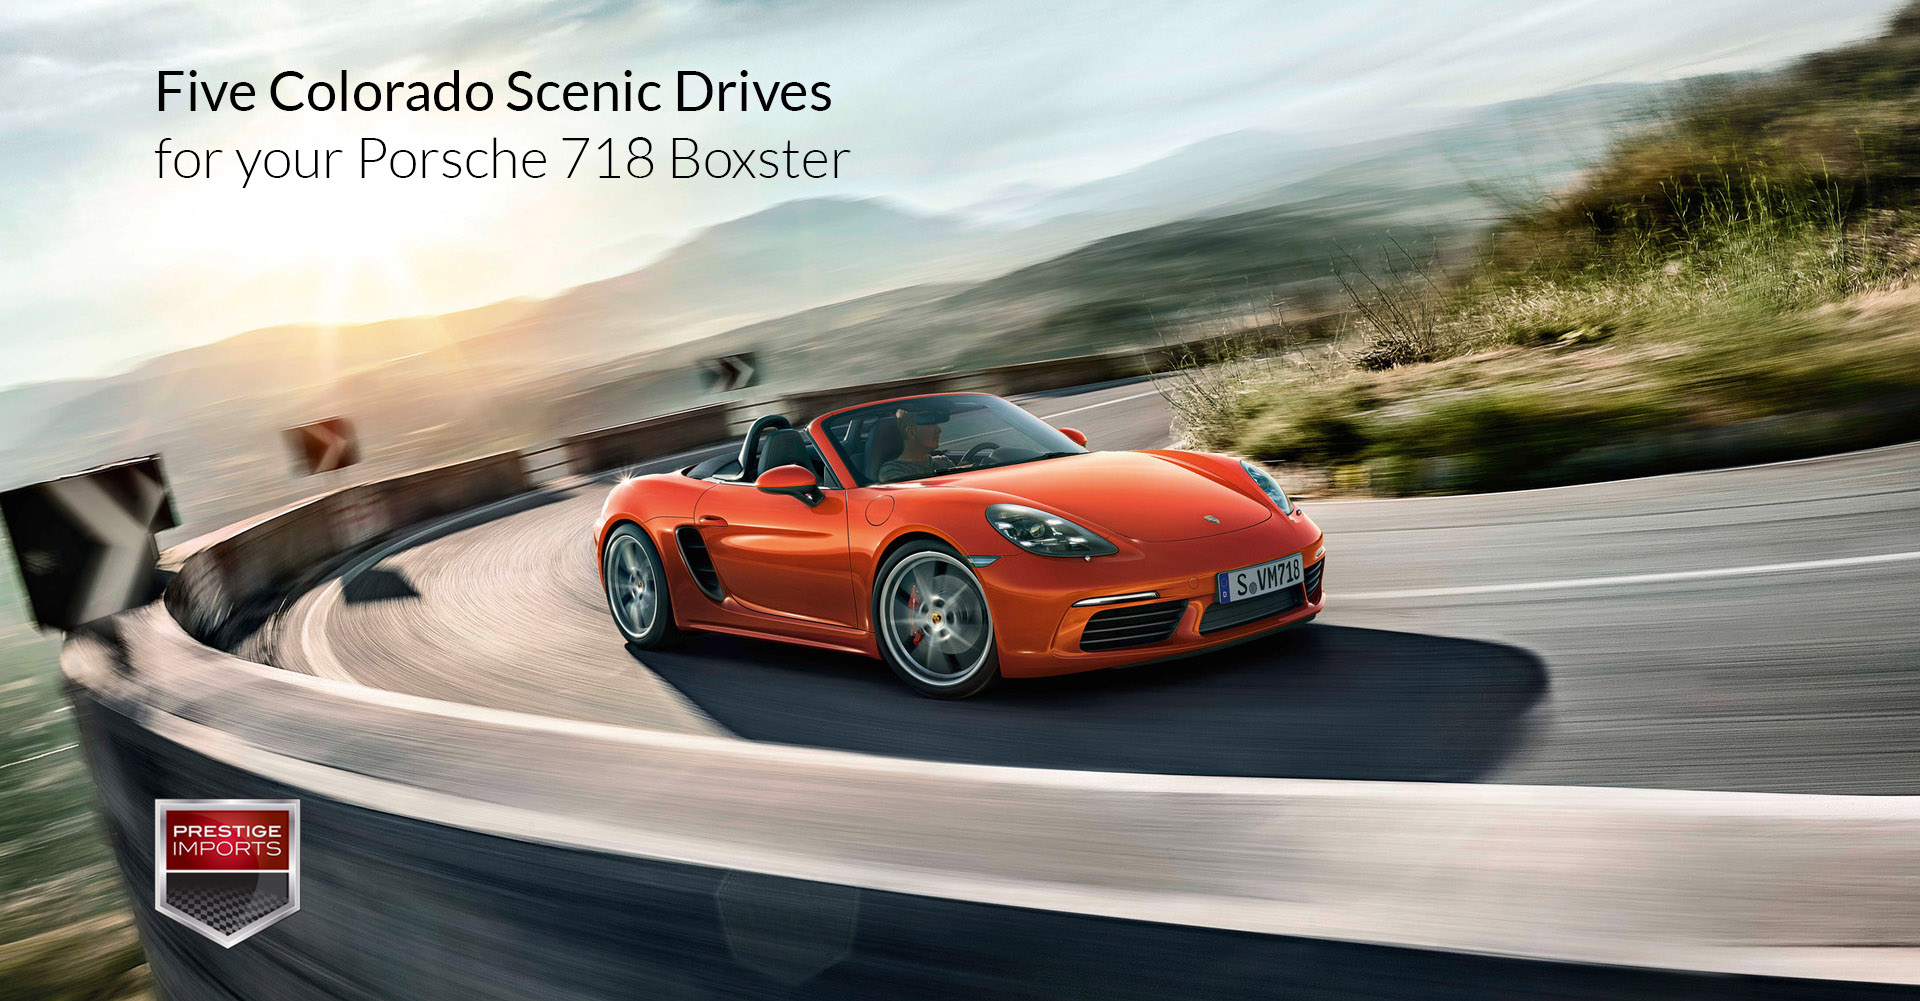 "Photo of a Porsche 718 Boxster on a mountain road. Used to illustrate the article ""Five Colorado Scenic Drives for your Porsche 718 Boxster""."